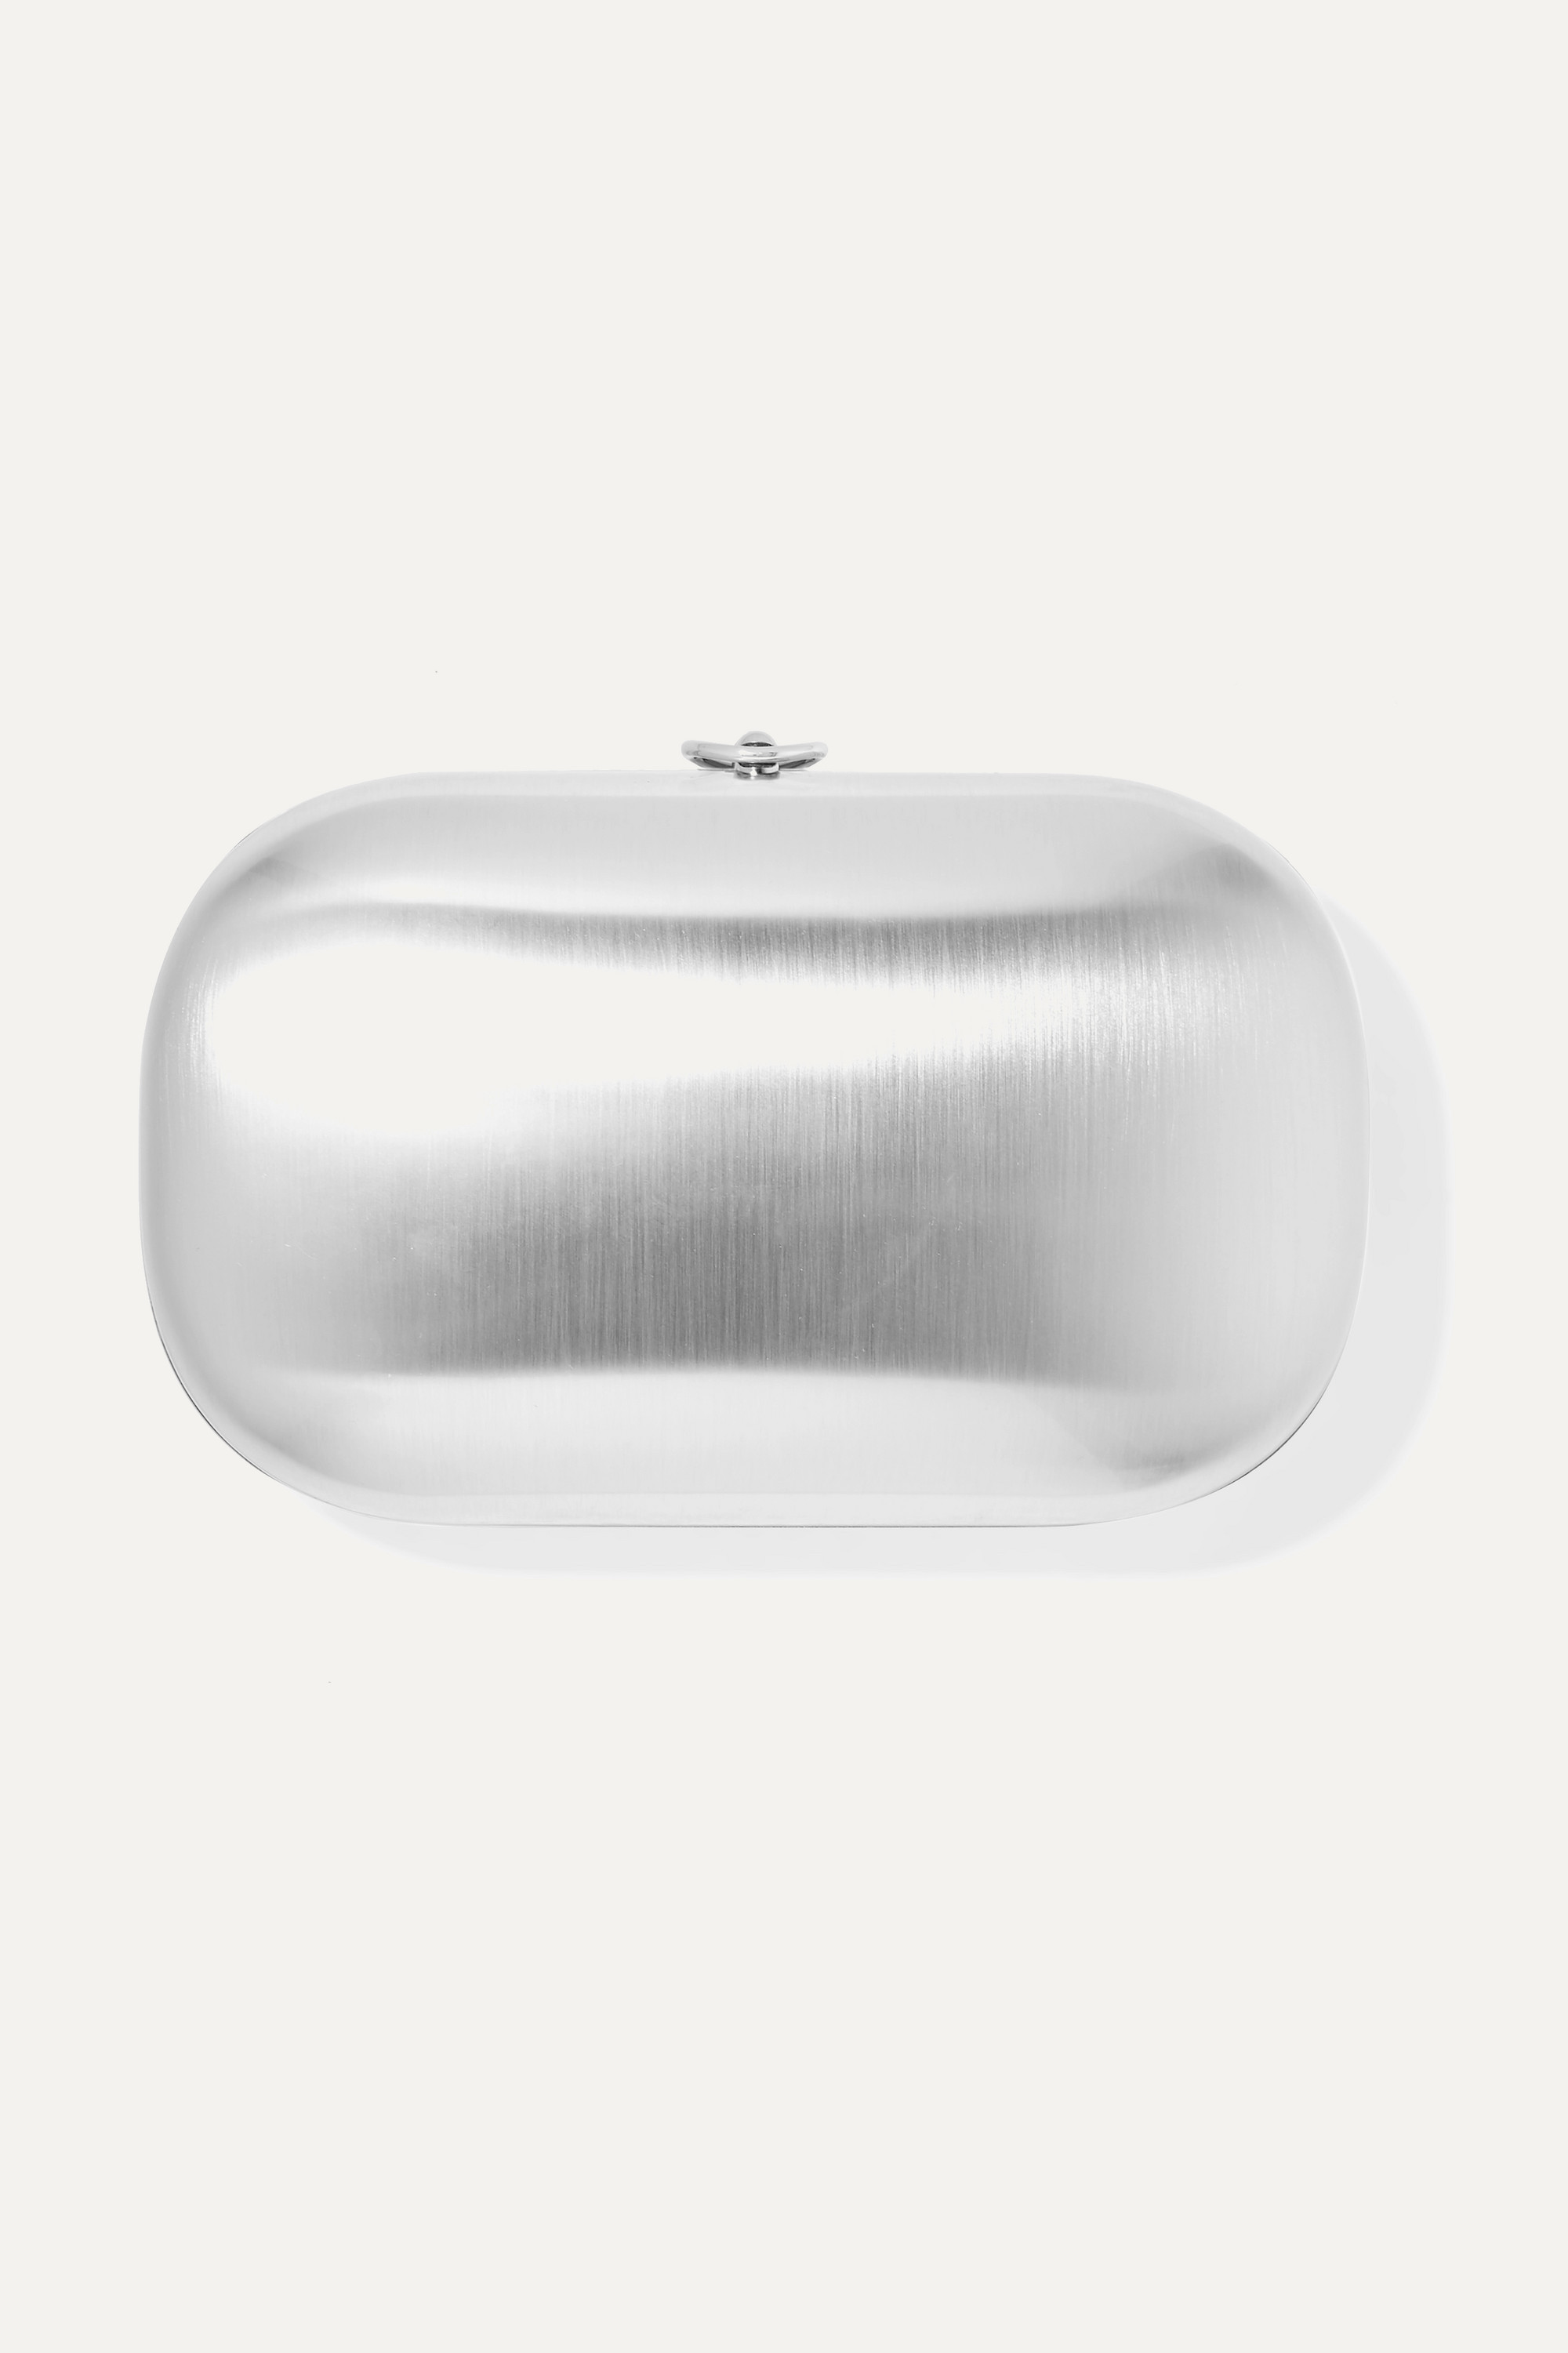 Jeffrey Levinson Elina Plus satin chrome aerospace aluminum clutch